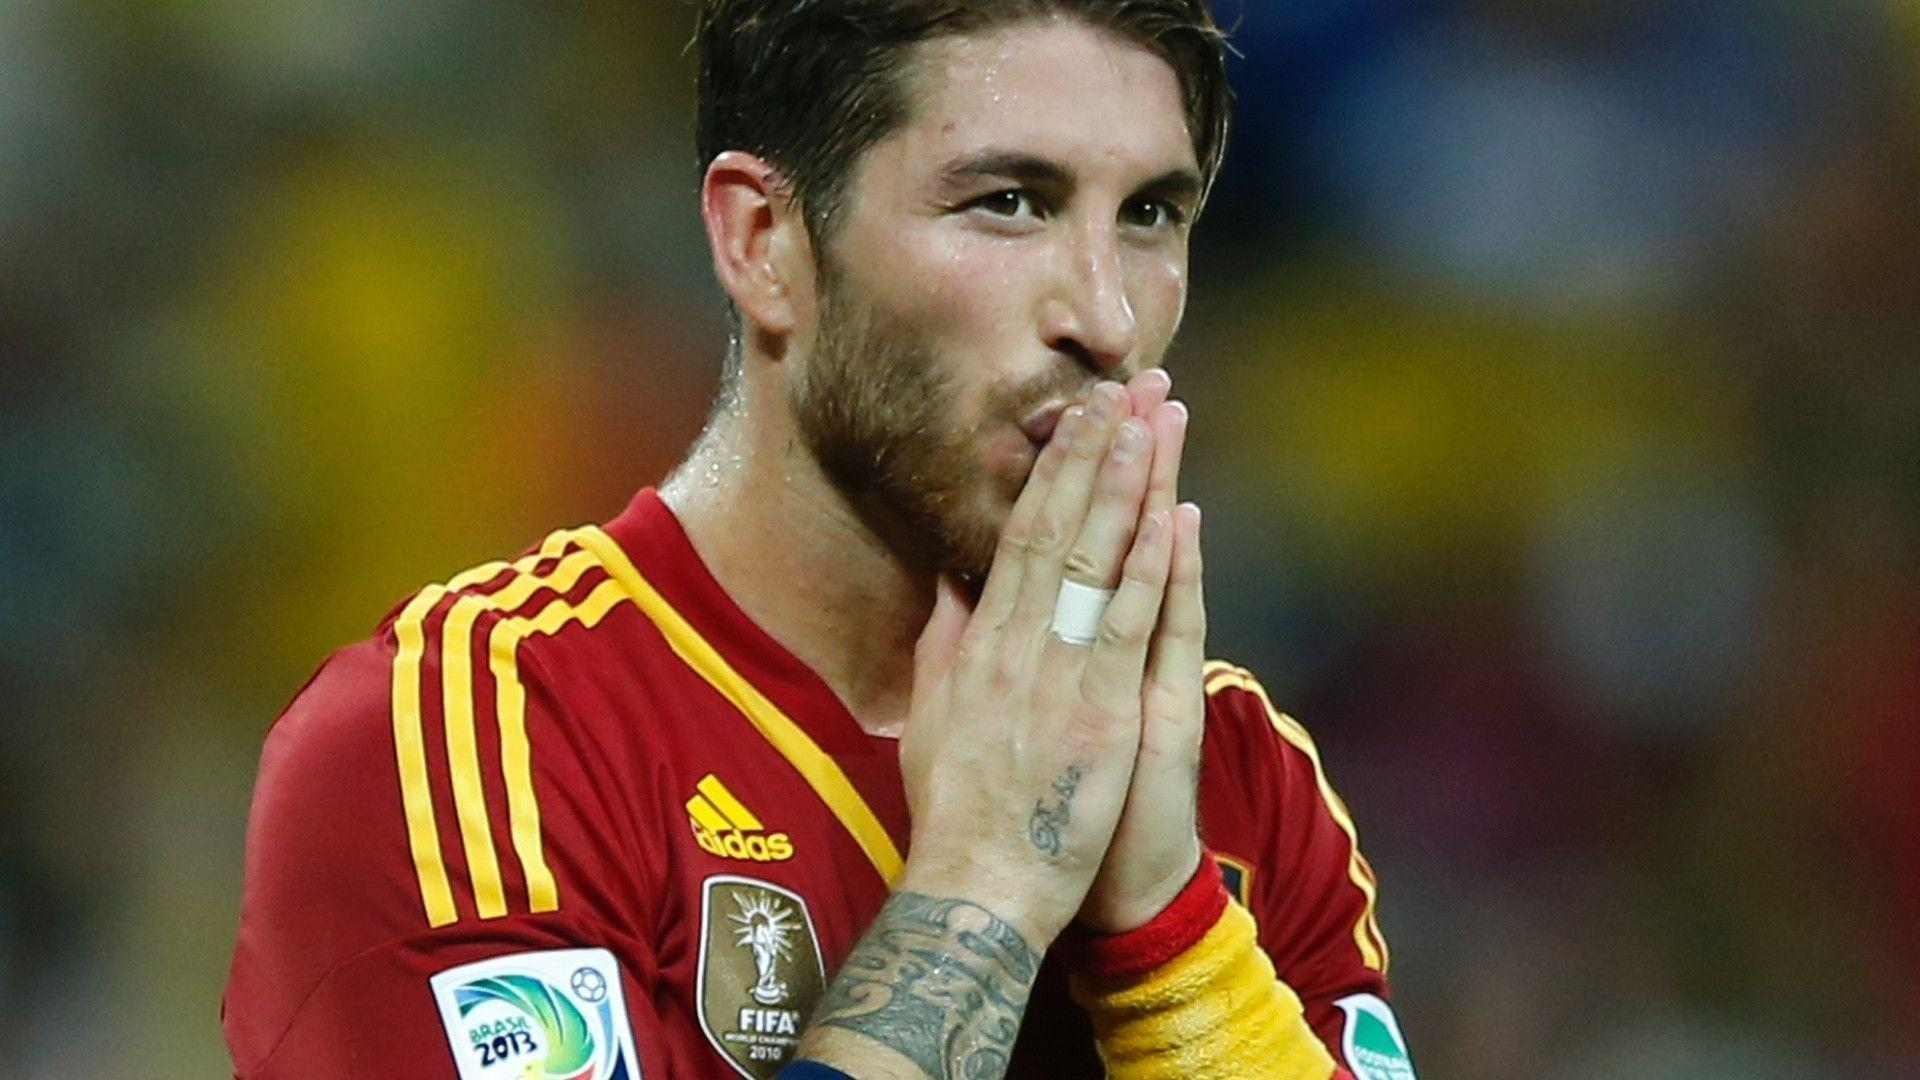 sergio ramos hd images - photo #9